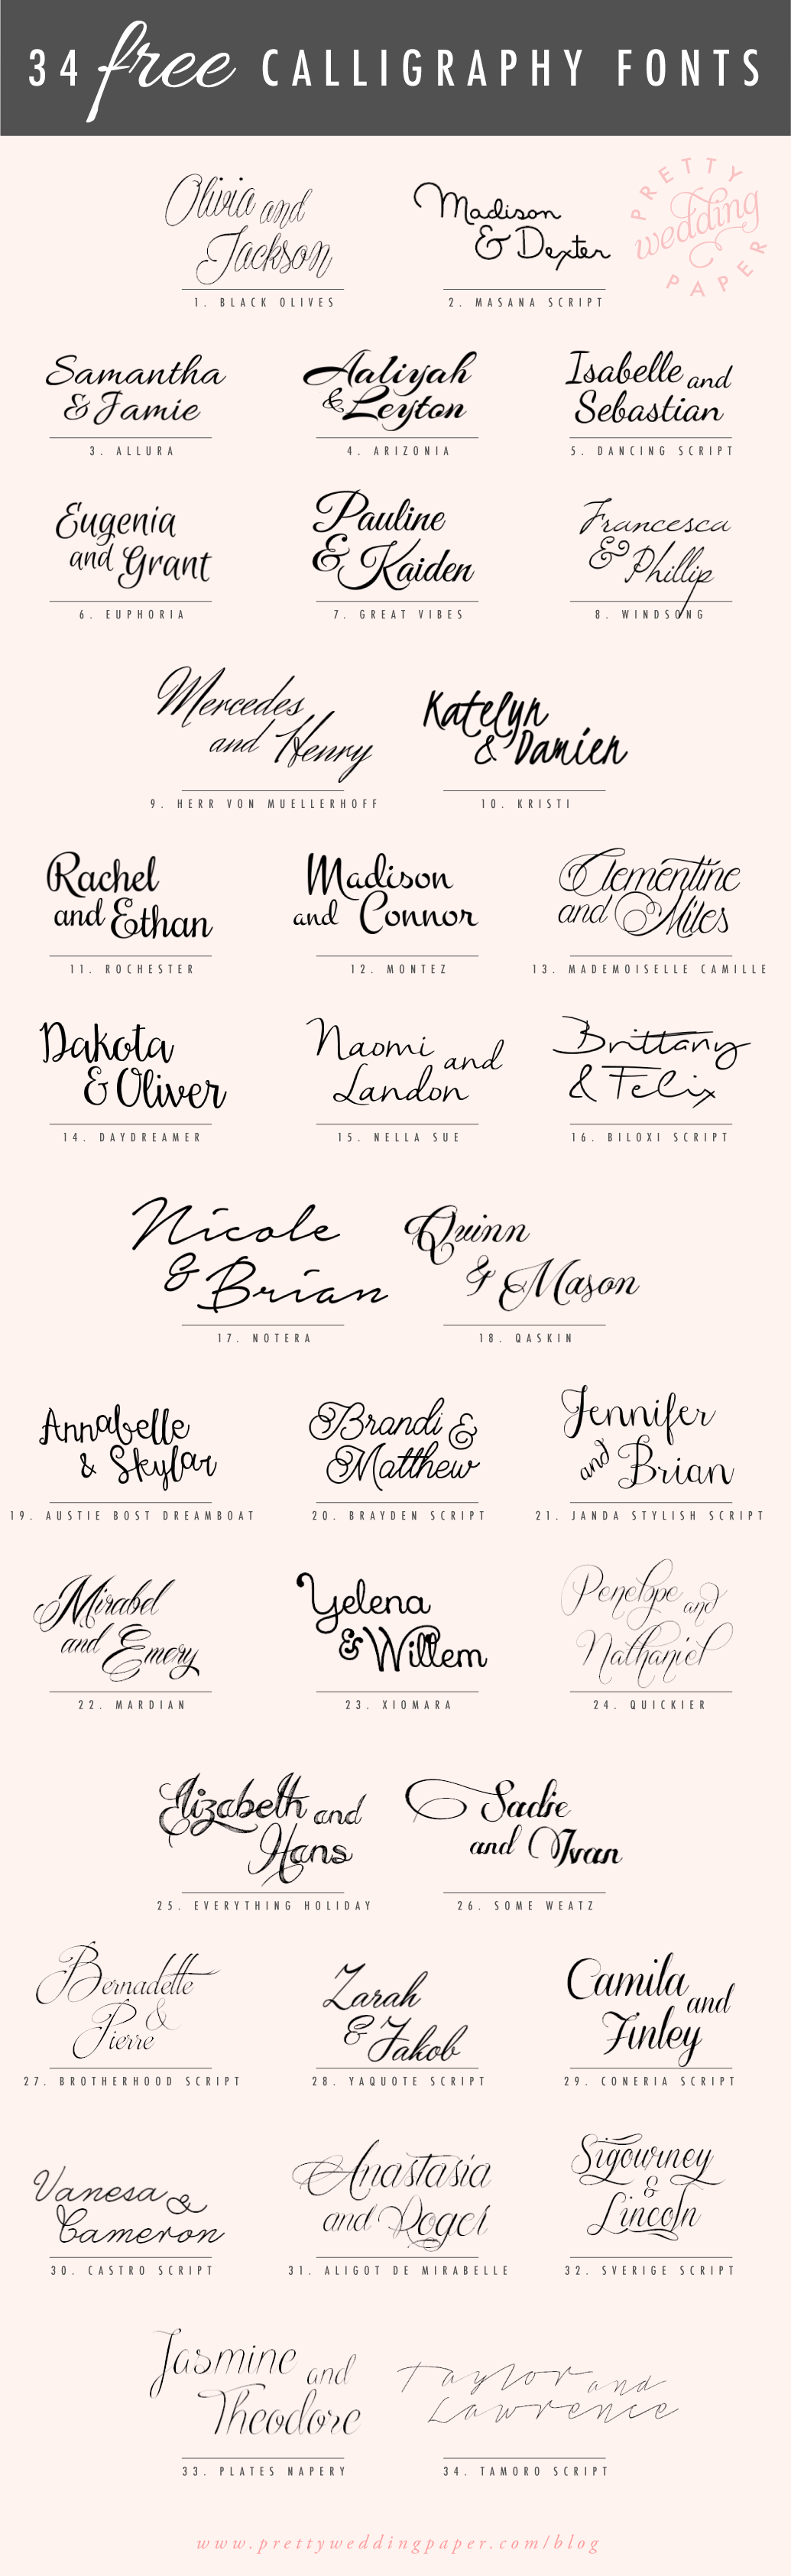 34 free calligraphy script fonts for wedding invitations Calligraphy text